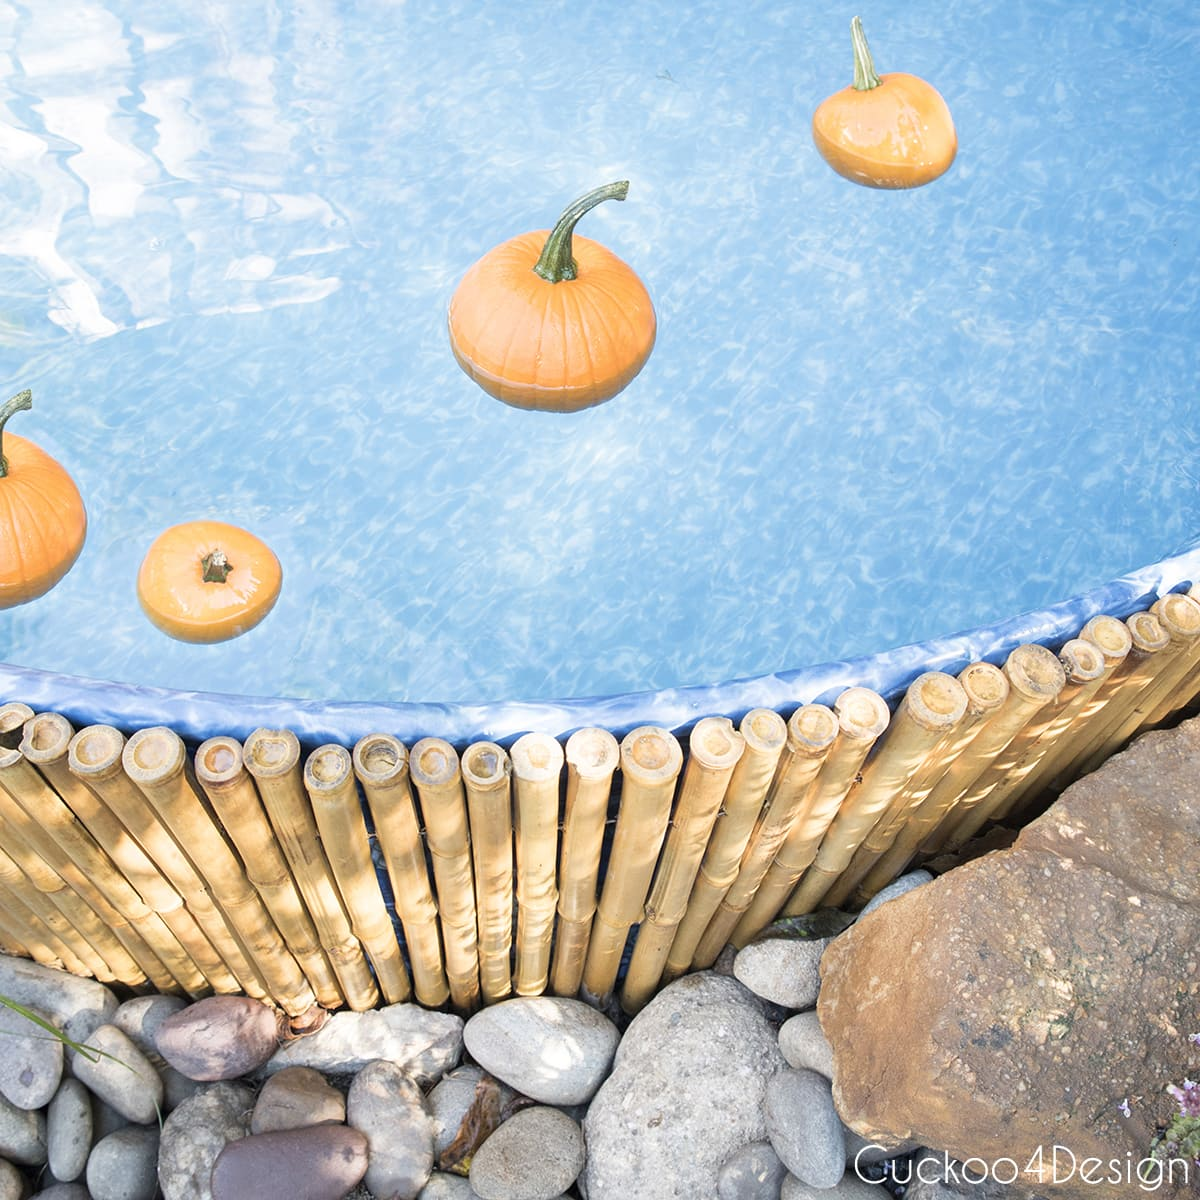 small floating pumpkins in stock tank pool